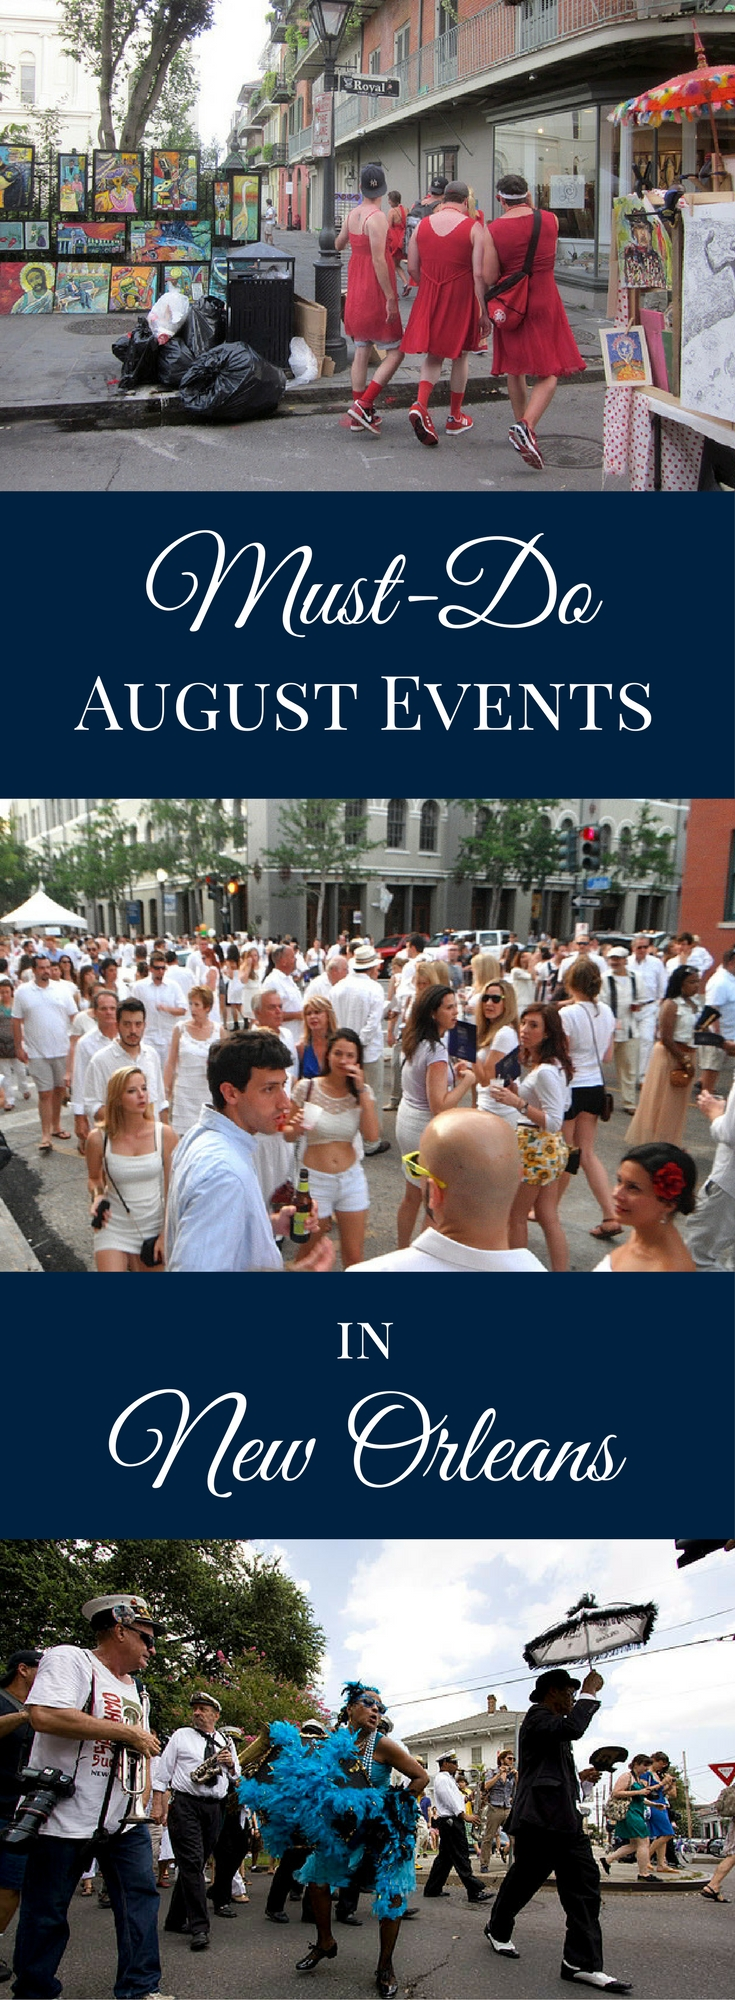 August in New Orleans brings plenty of summer fun. From White Linen Night to Red Dress Run, add these festive events to your New Orleans vacation plans.